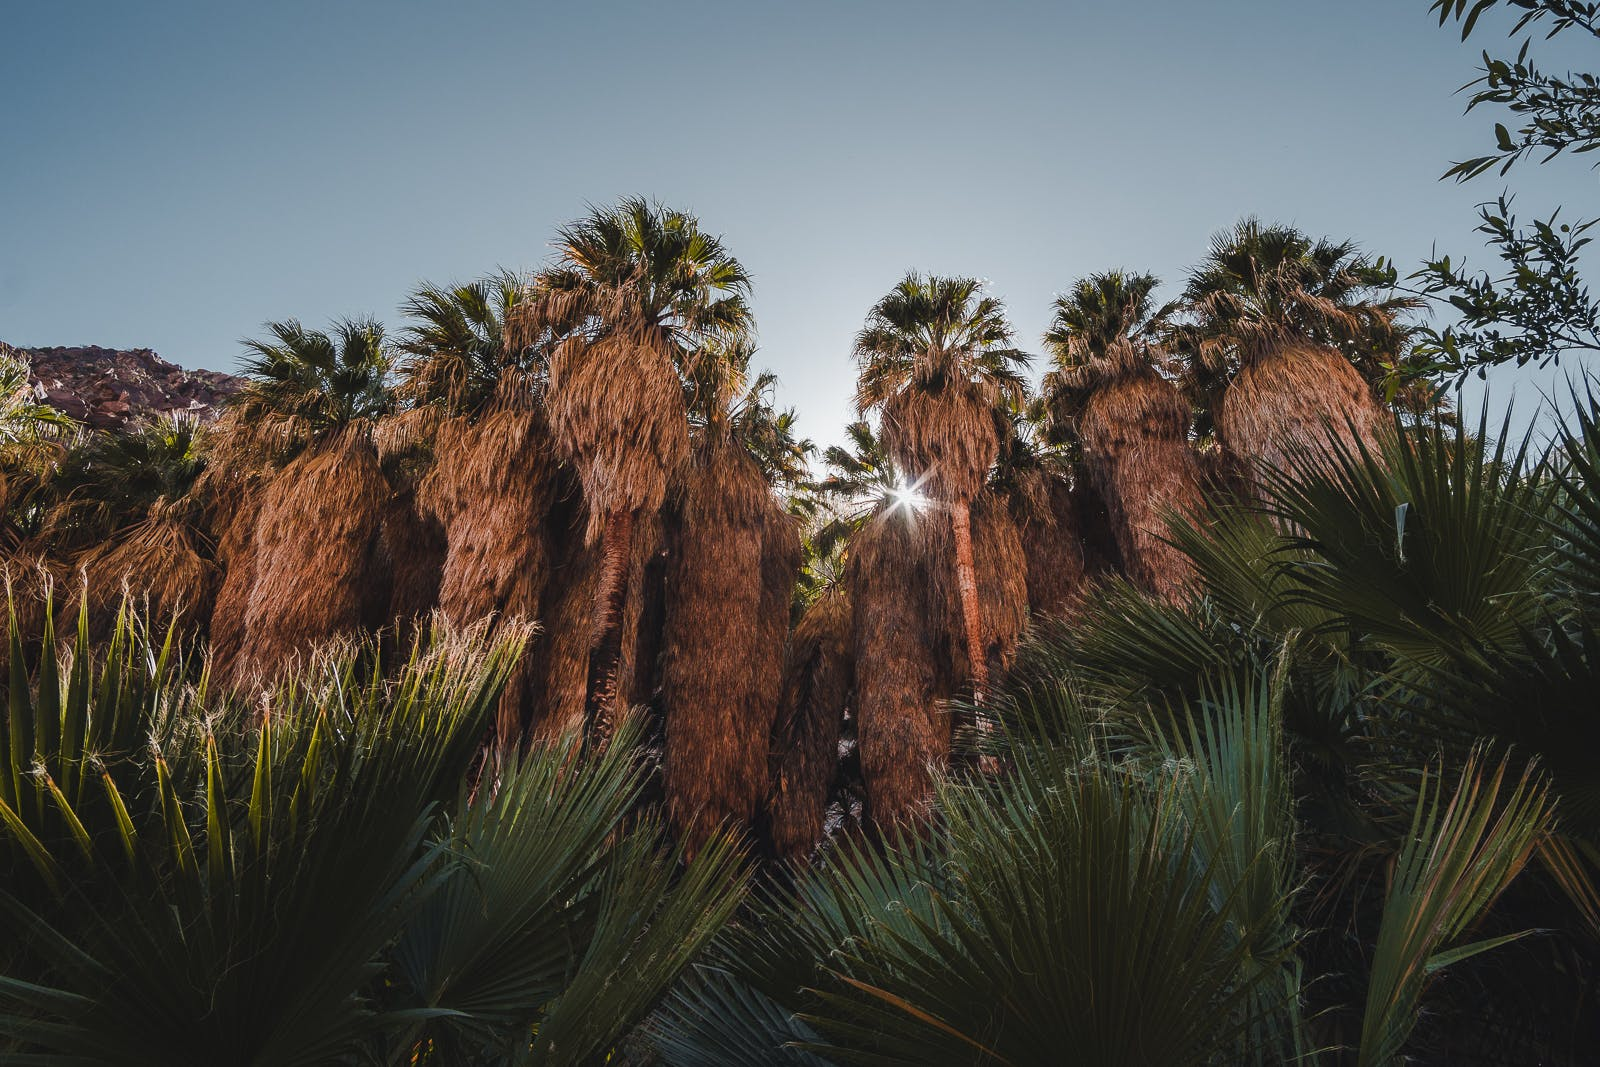 palm trees along the Borrego Palm Canyon Trail